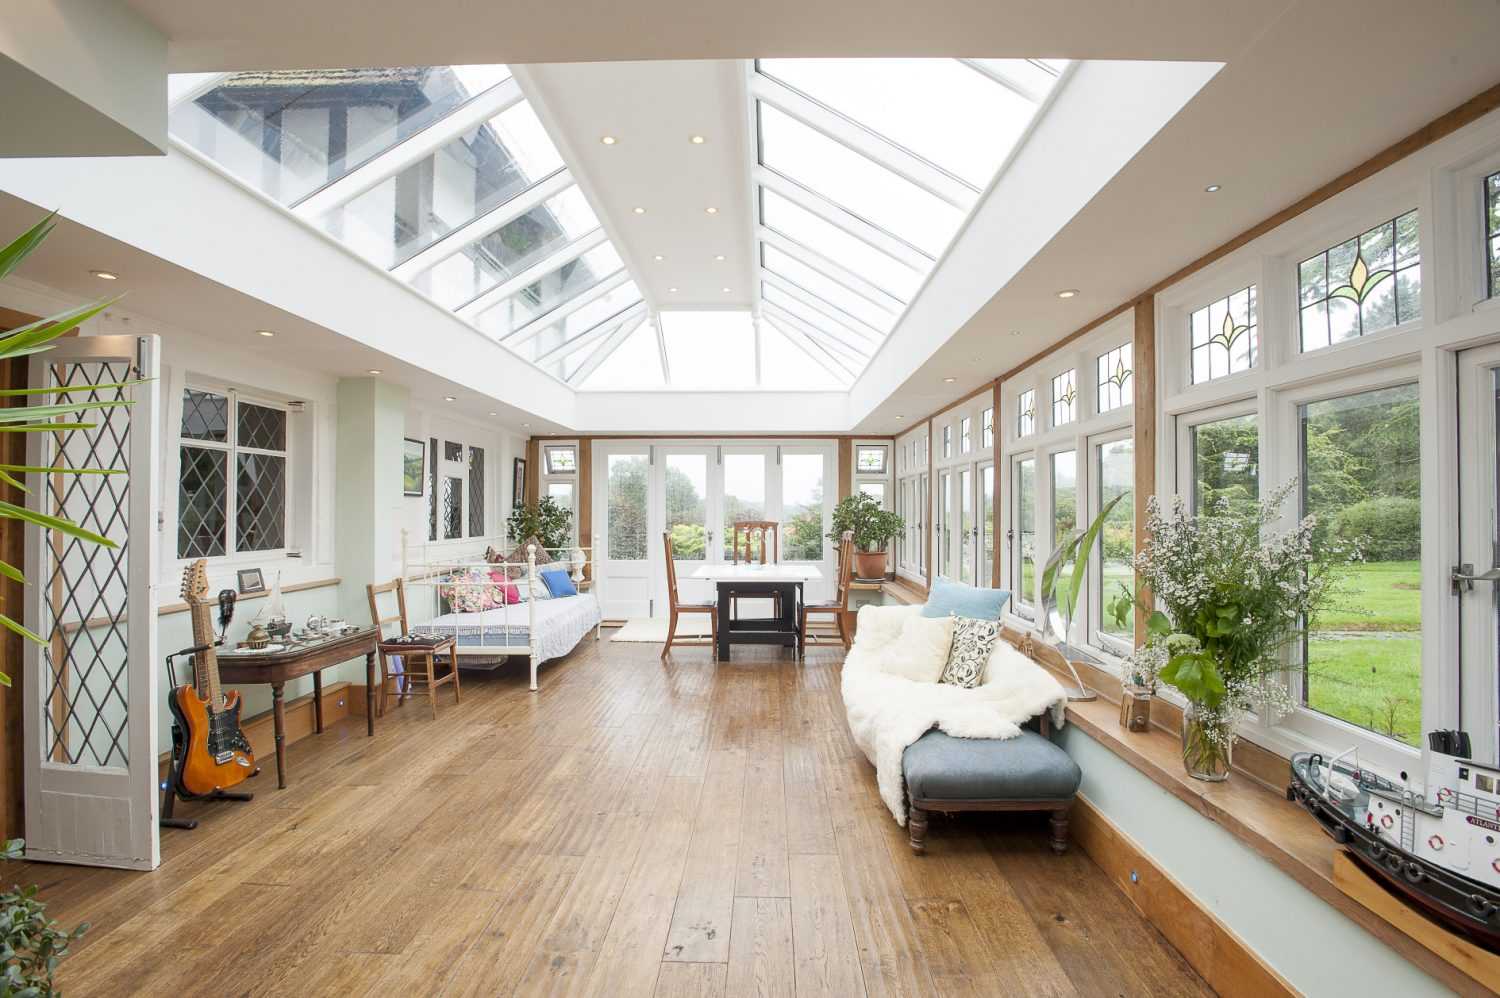 The Garden Room is where Jilly and Peter spend a great deal of their time. With underfloor heating and a southwest aspect it's a warm and cosy place to soak up the winter sunshine